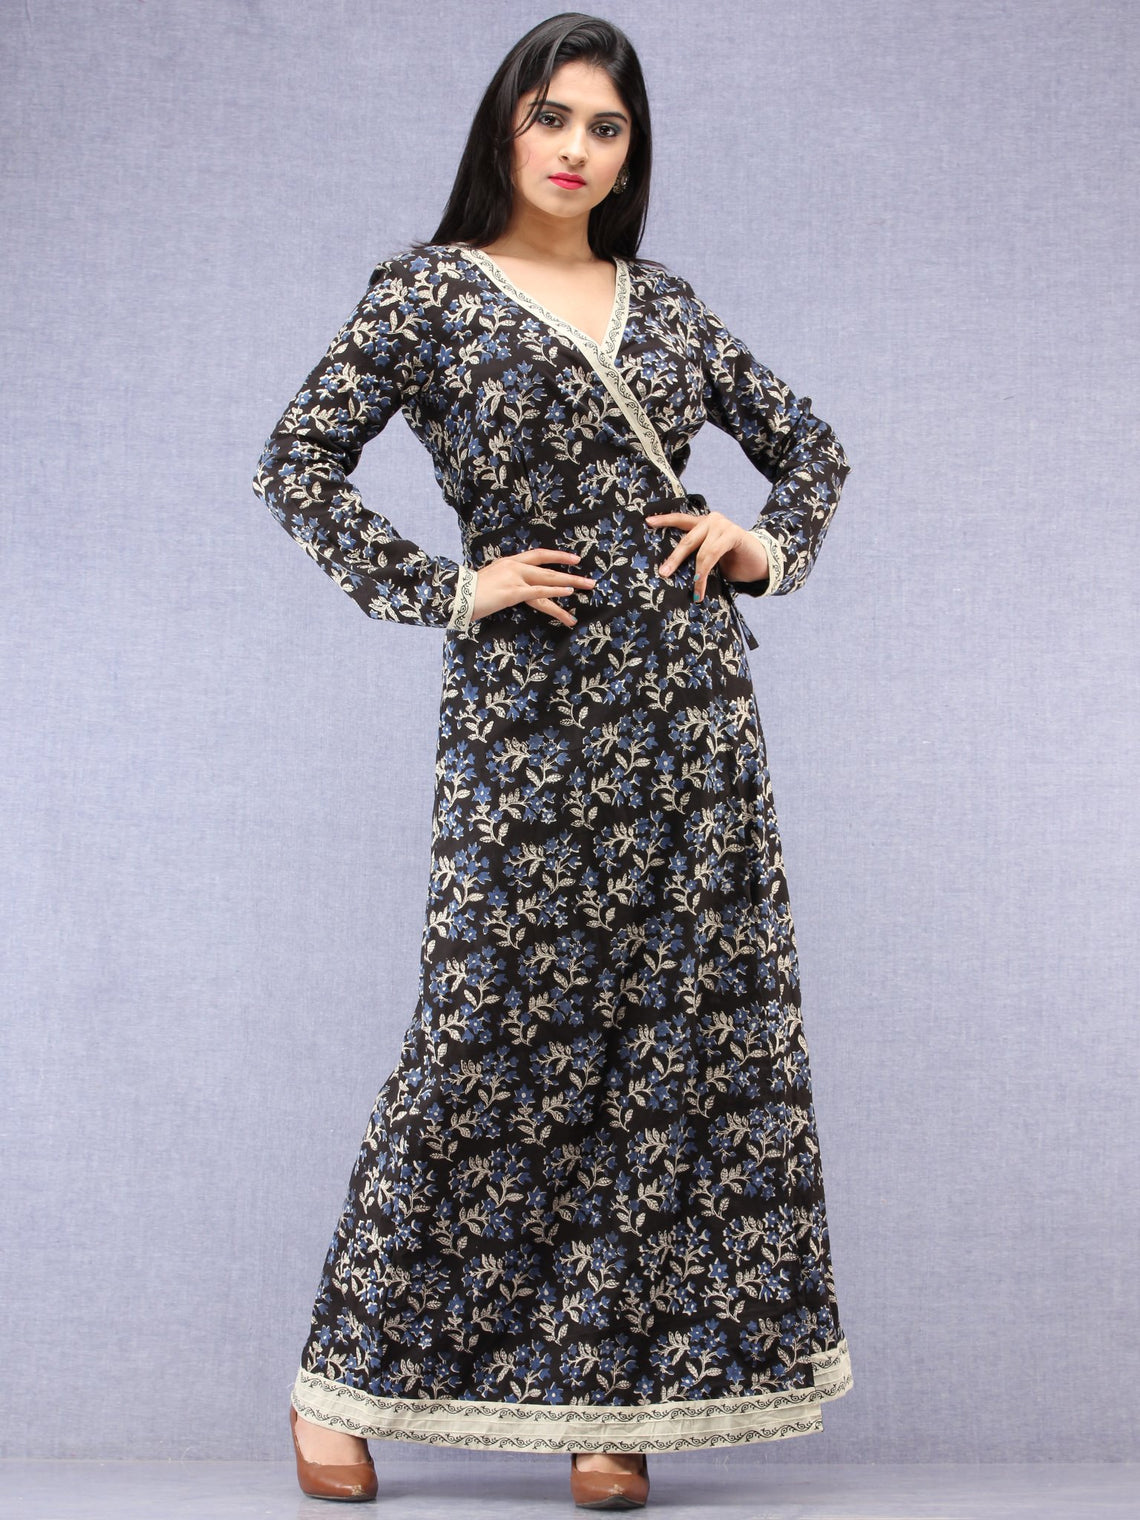 Johi - Hand Block Printed Long Cotton Wrap Round Dress  - D394F2062